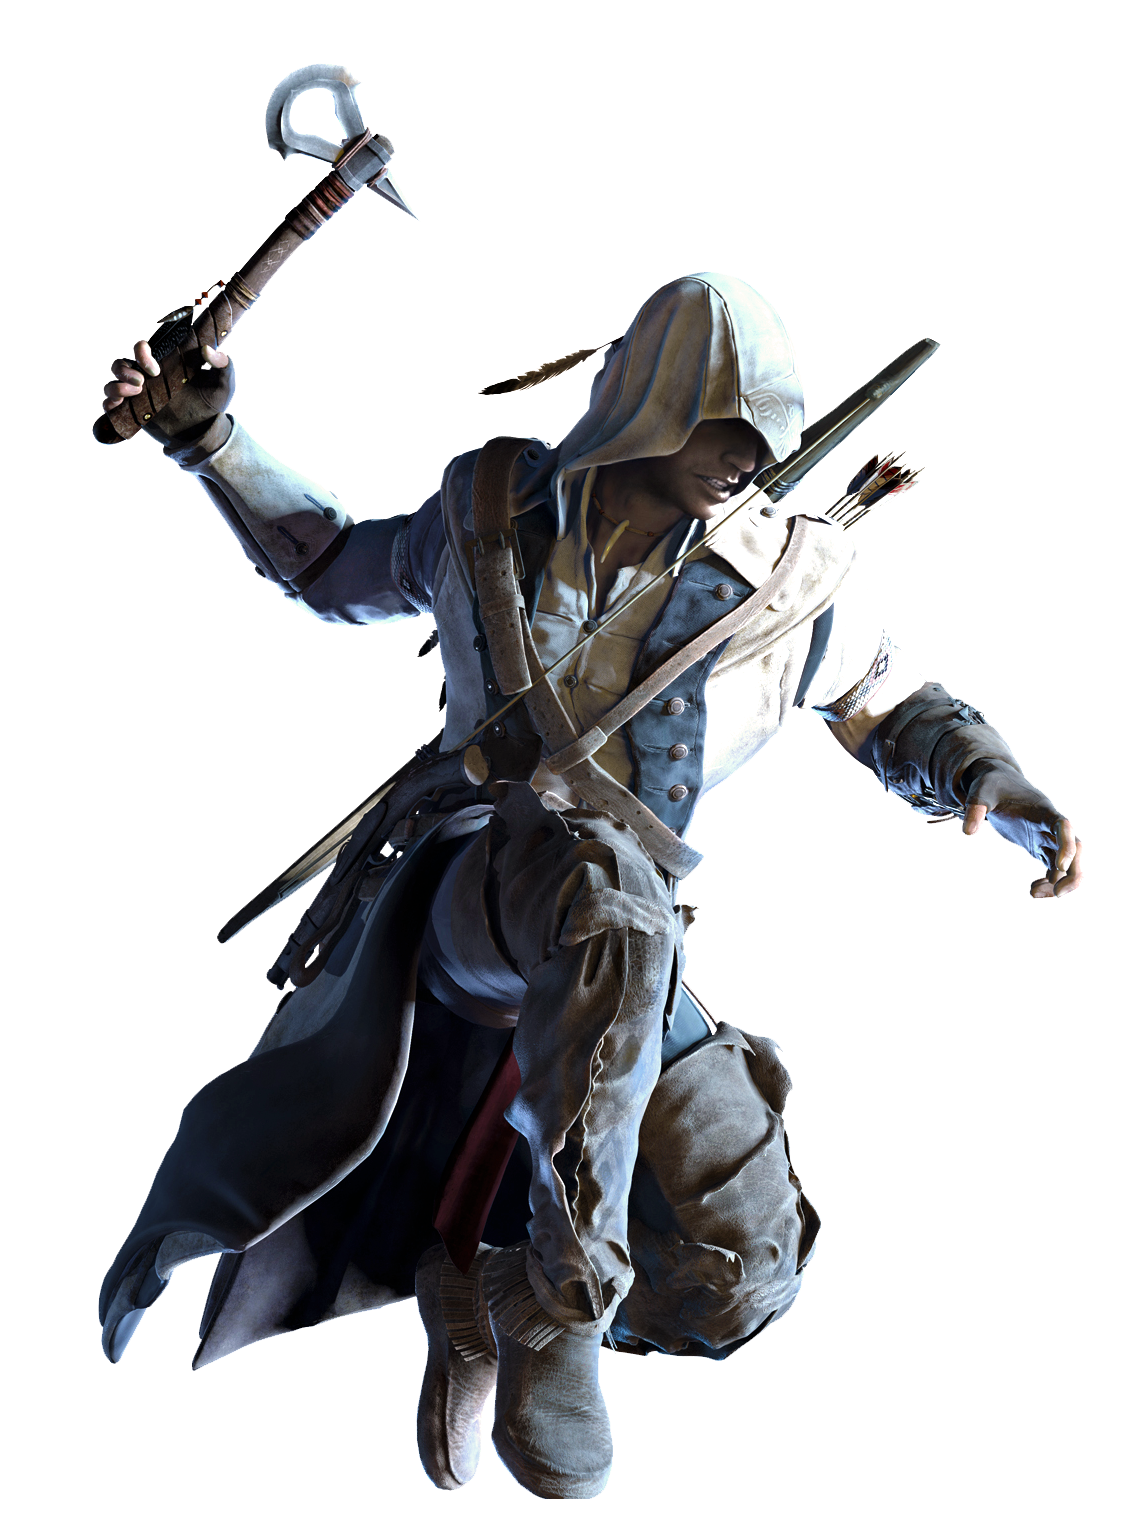 Ac3 Connor Aa Render Png Assassin S Creed All Assassin S Creed Best Assassin S Creed